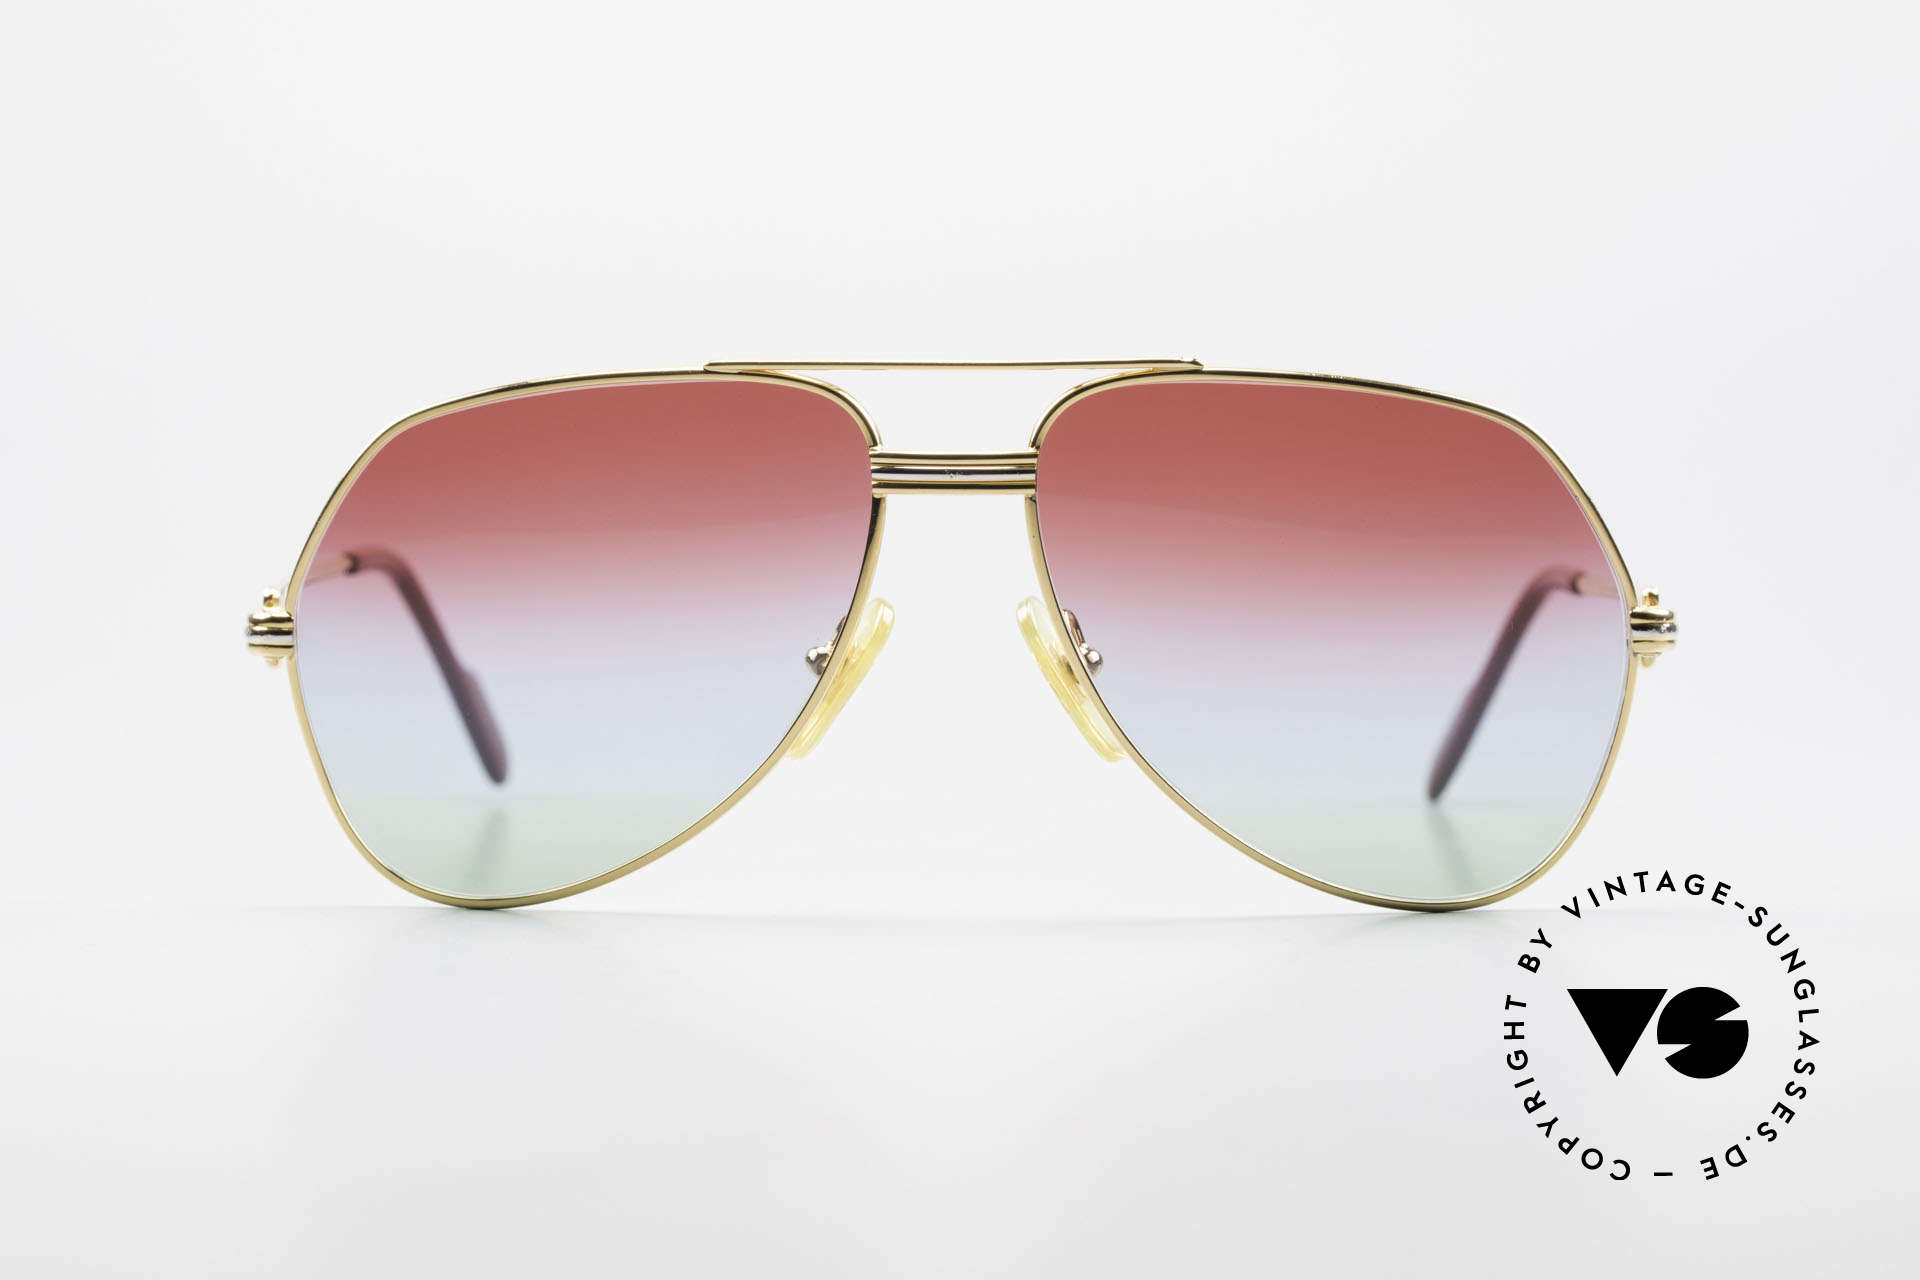 """Cartier Vendome LC - S 1980's Sunglasses Tricolored, model """"Vendome"""" was launched in 1983 & made till 1997, Made for Men and Women"""